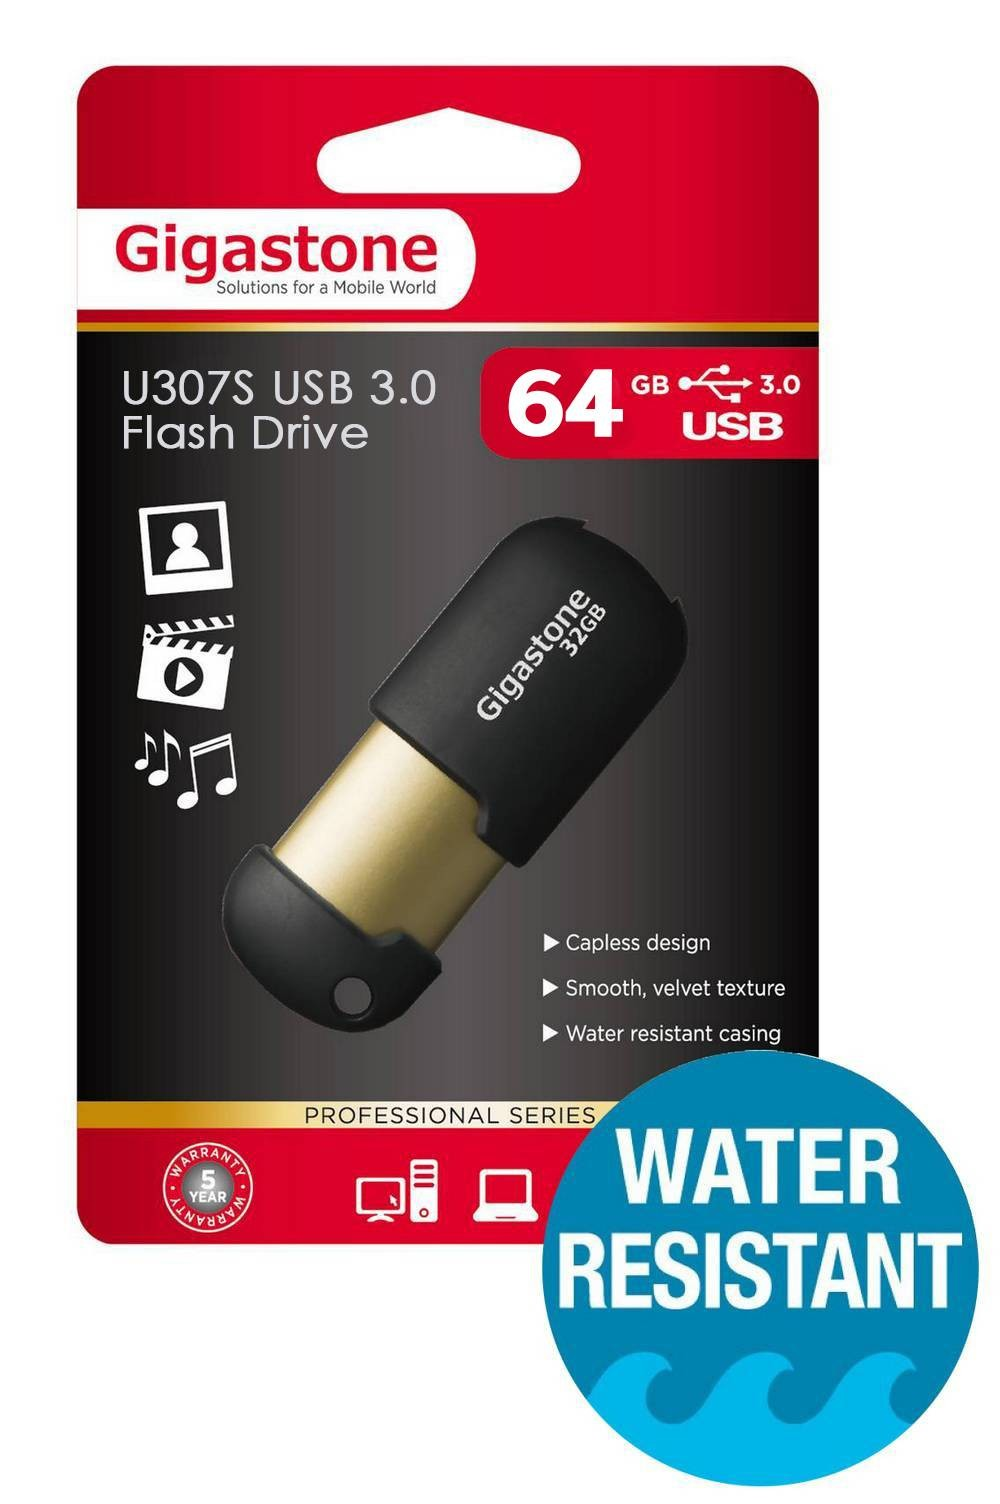 Gigastone 64Gb USB 3.0 Flash Disk U307S